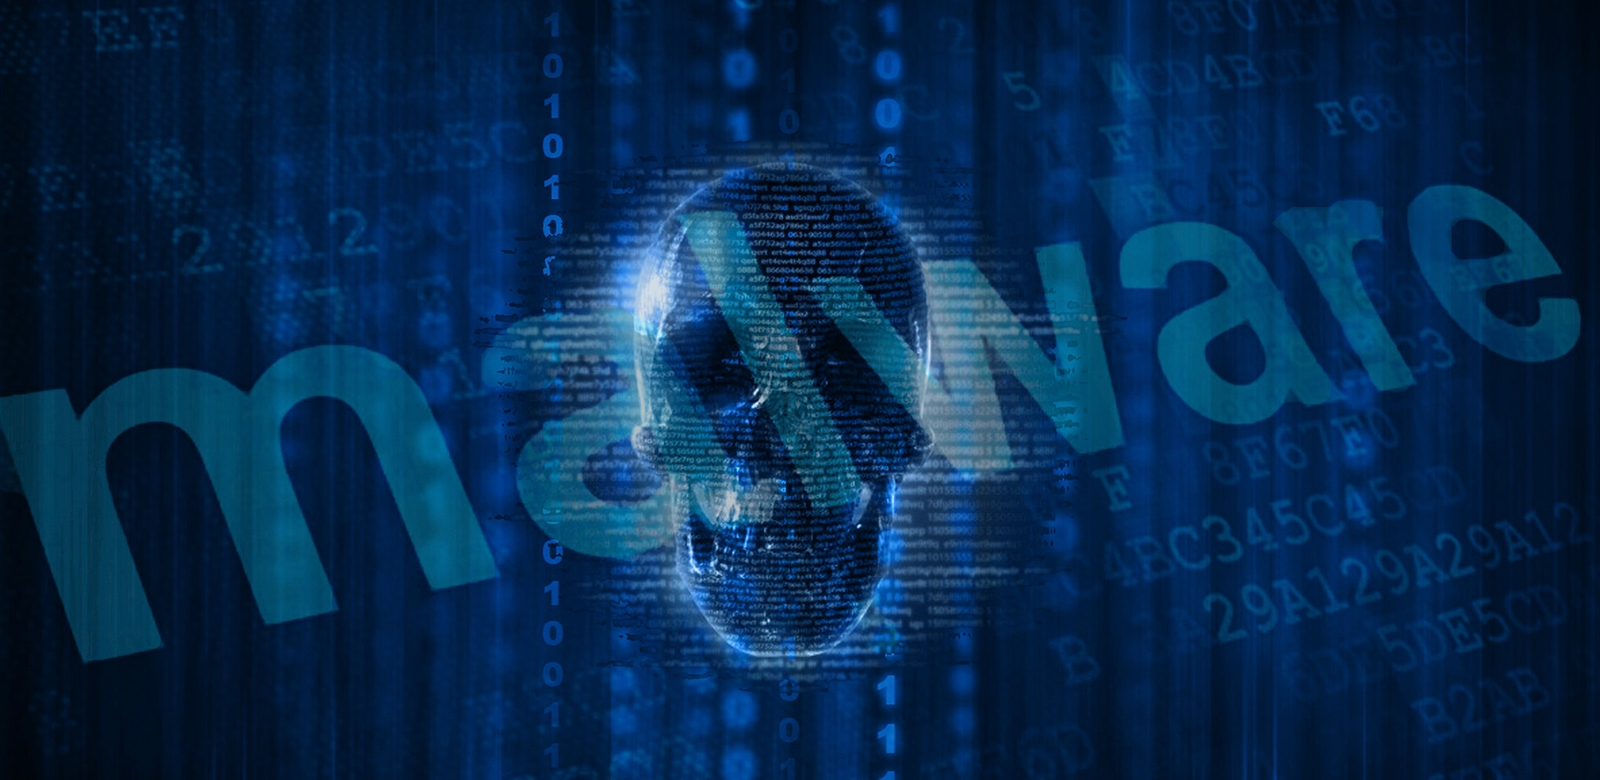 image of human skull against a background of narrow columns of zeros and ones, with the word. #malware, overlaid